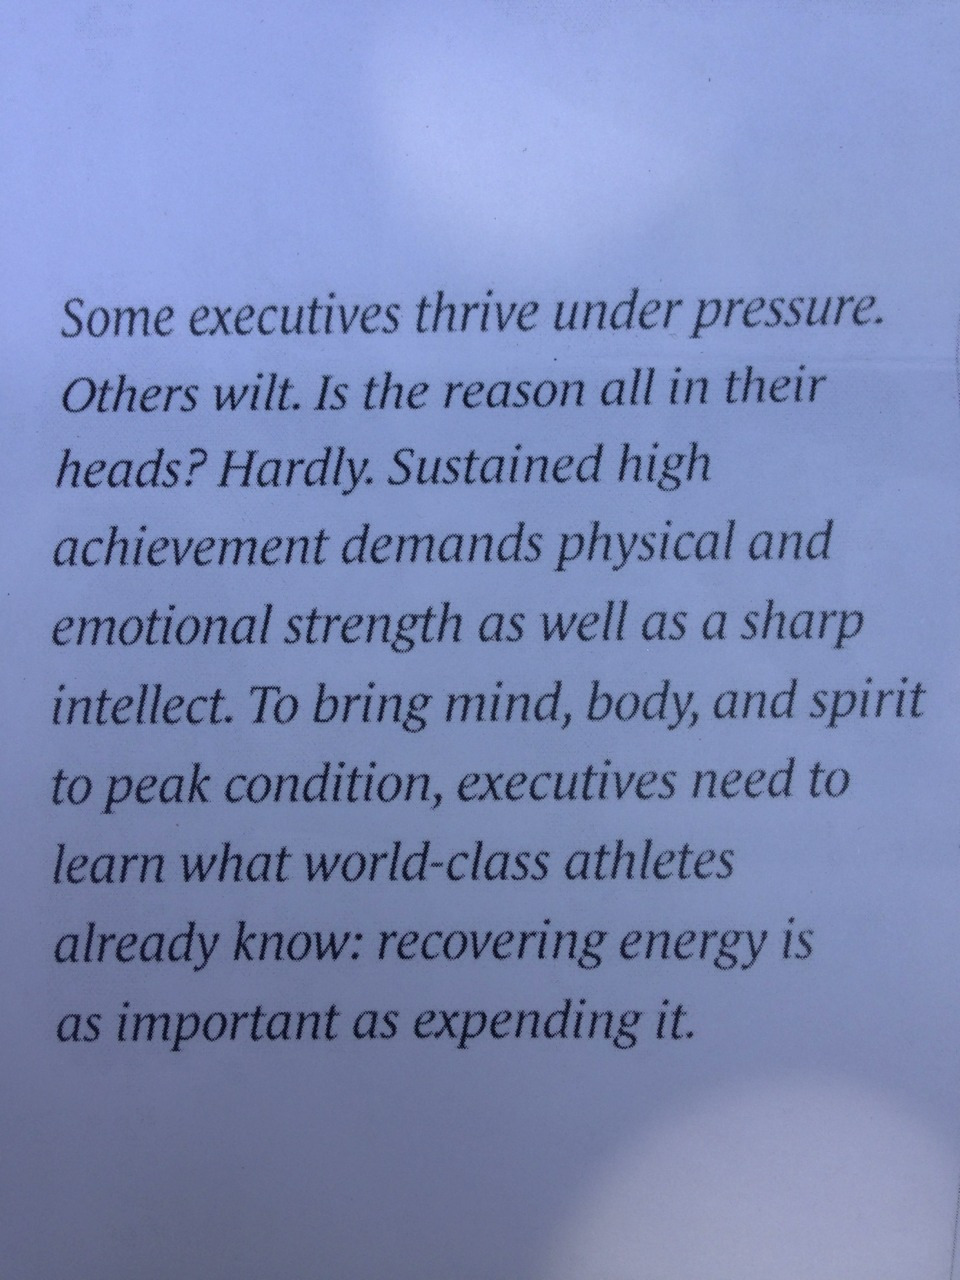 """Yoga- My favorite way to """"recover energy""""  **excerpt from Harvard Business Review article titled """"The Making of a Corporate Athlete"""""""